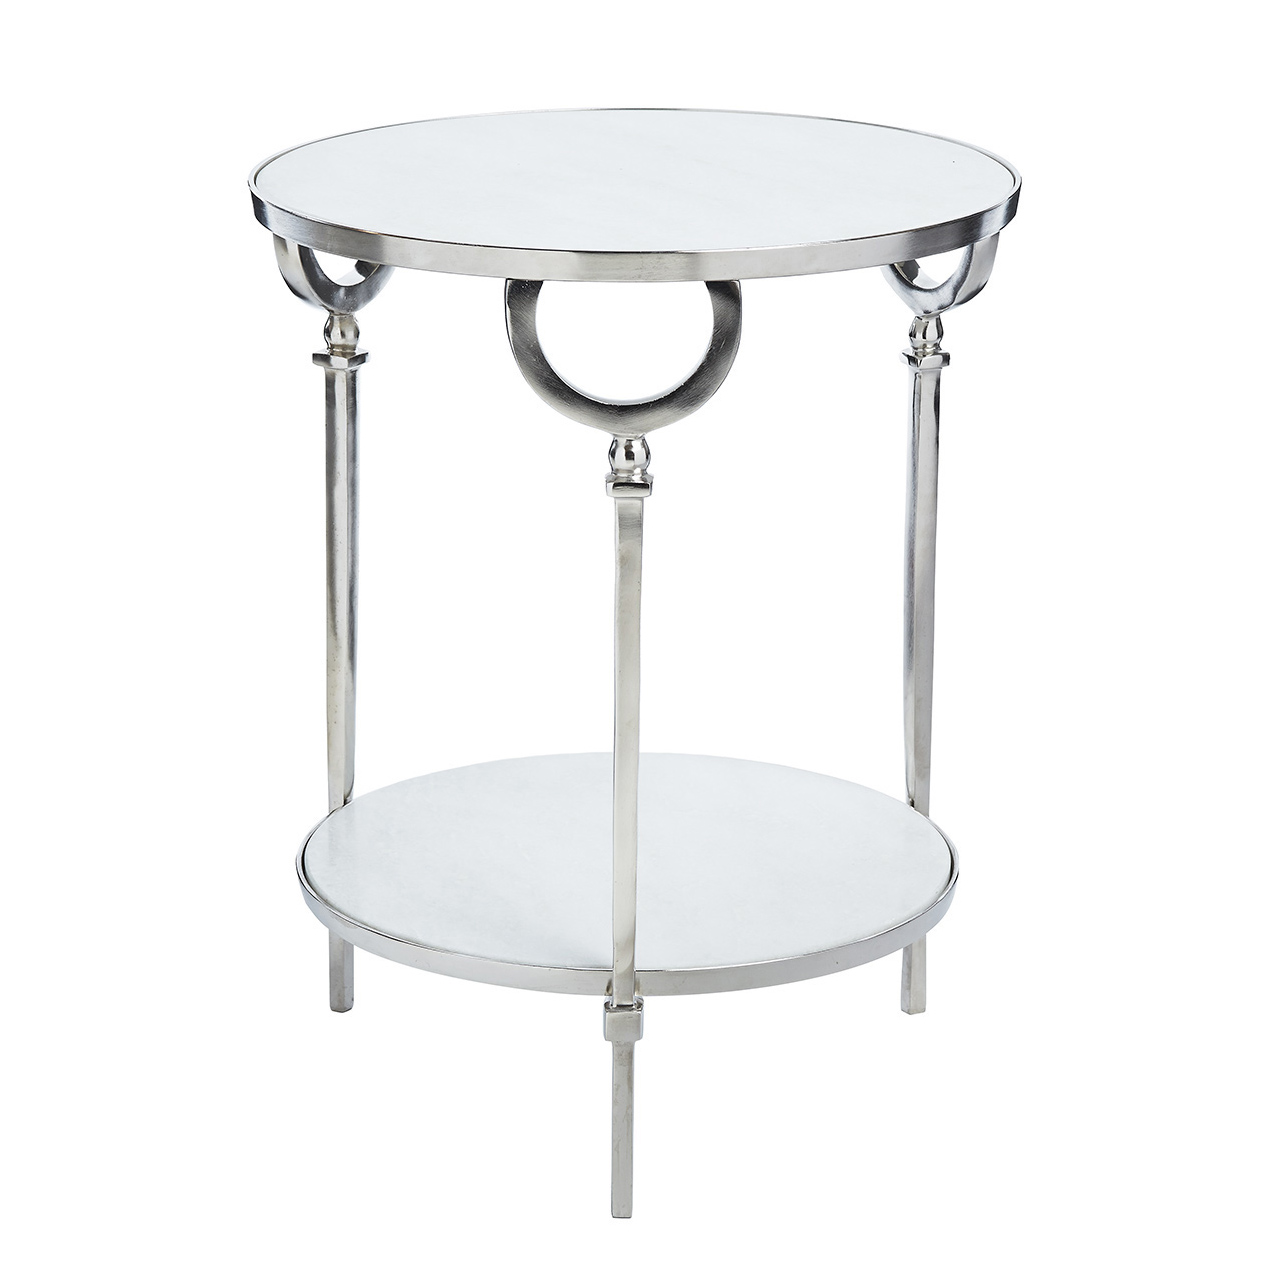 lovable marble top accent table with white joyce bowring unfinished pine inch console tablet eagle outdoor dining furniture small bedside drawers carpet threshold transition strip